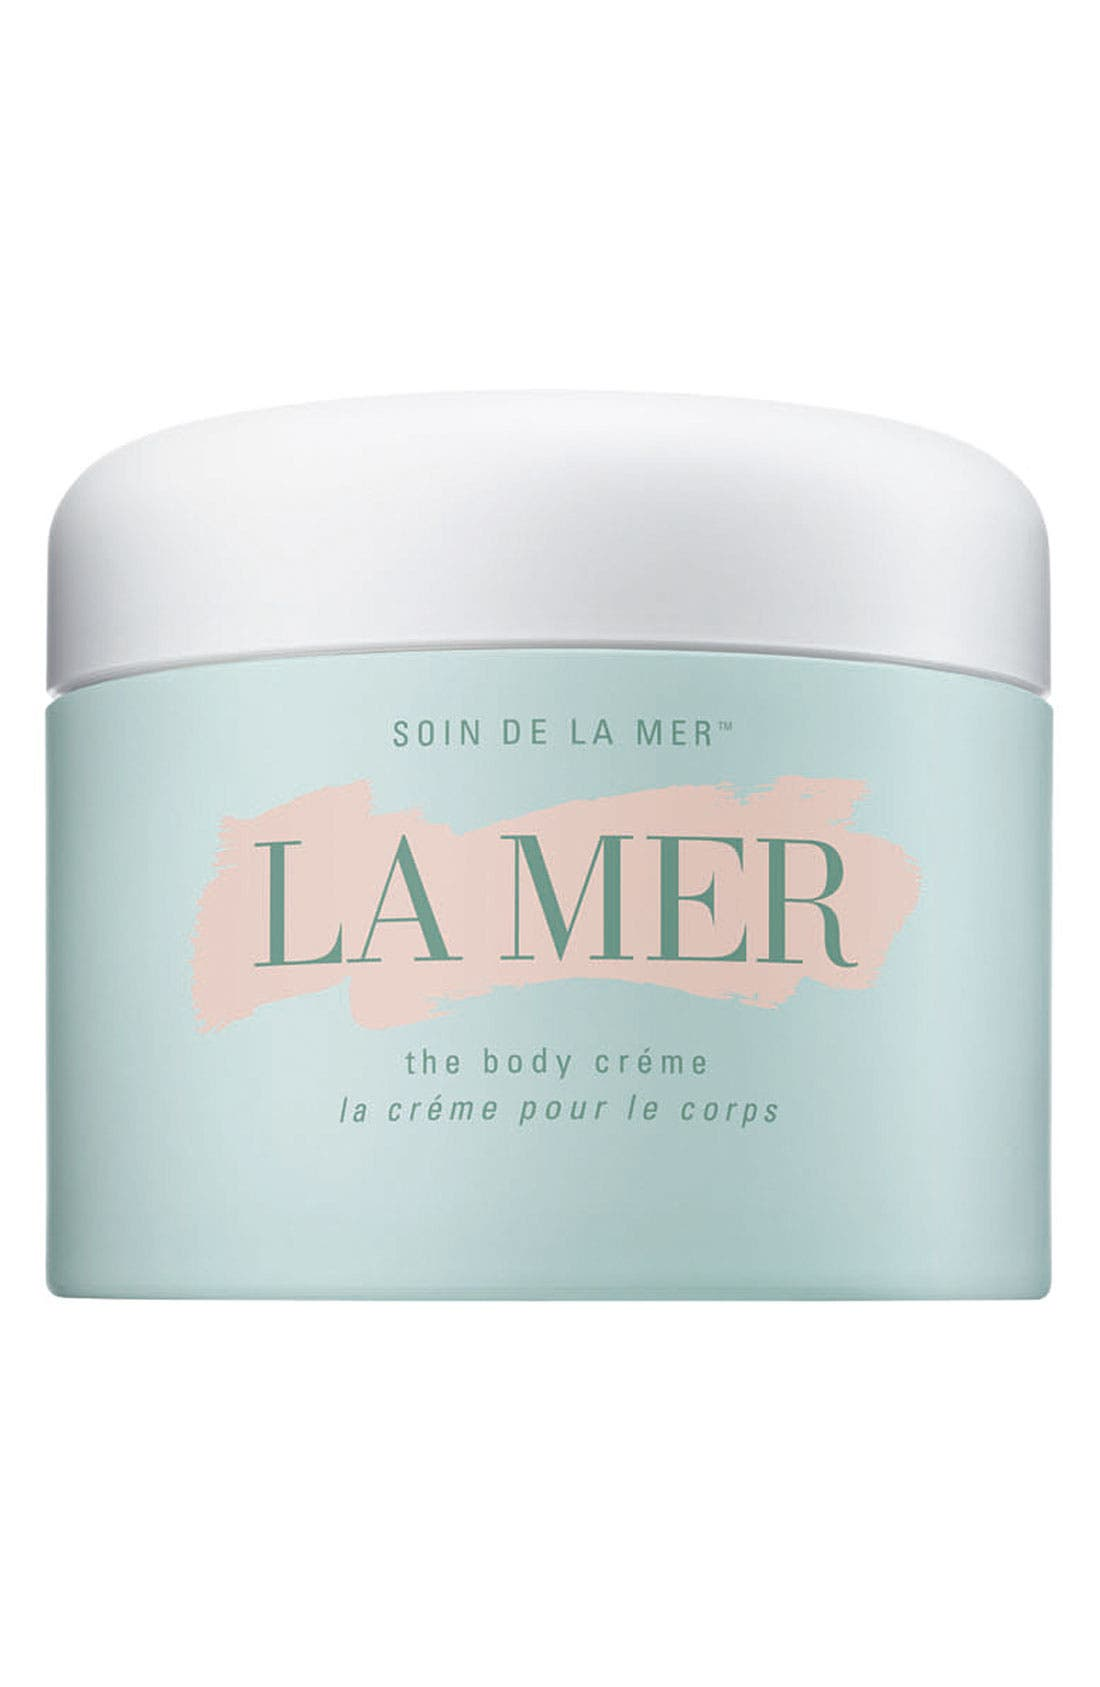 La Mer The Body Crème Jar